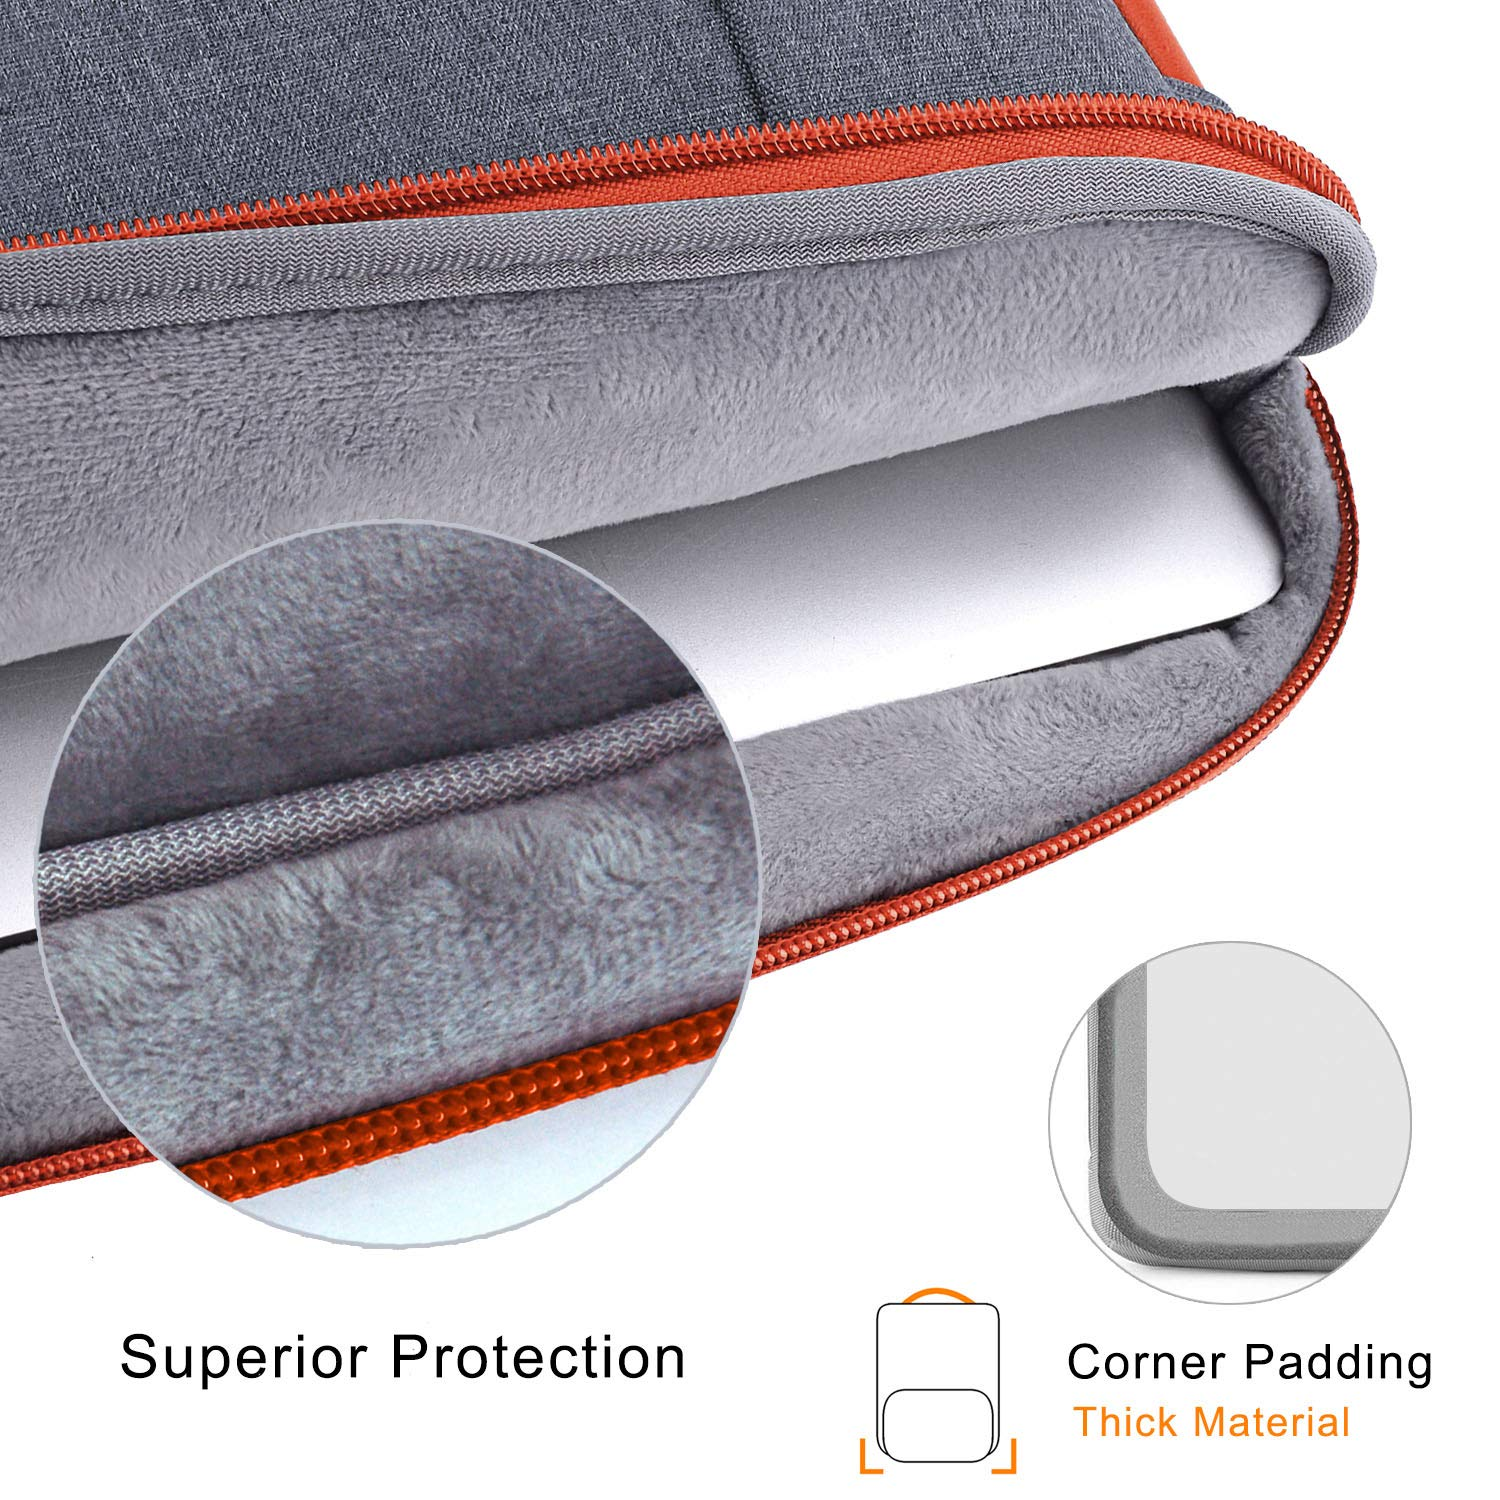 Voova 14-15.6 Inch Laptop Sleeve Bag Cover Special Design Waterproof Computer Protective Carry Case with Detachable Accessory Pocket Compatible with MacBook Pro Retina 15'', HP, Asus, Acer, Dark Gray by  Voova (Image #5)